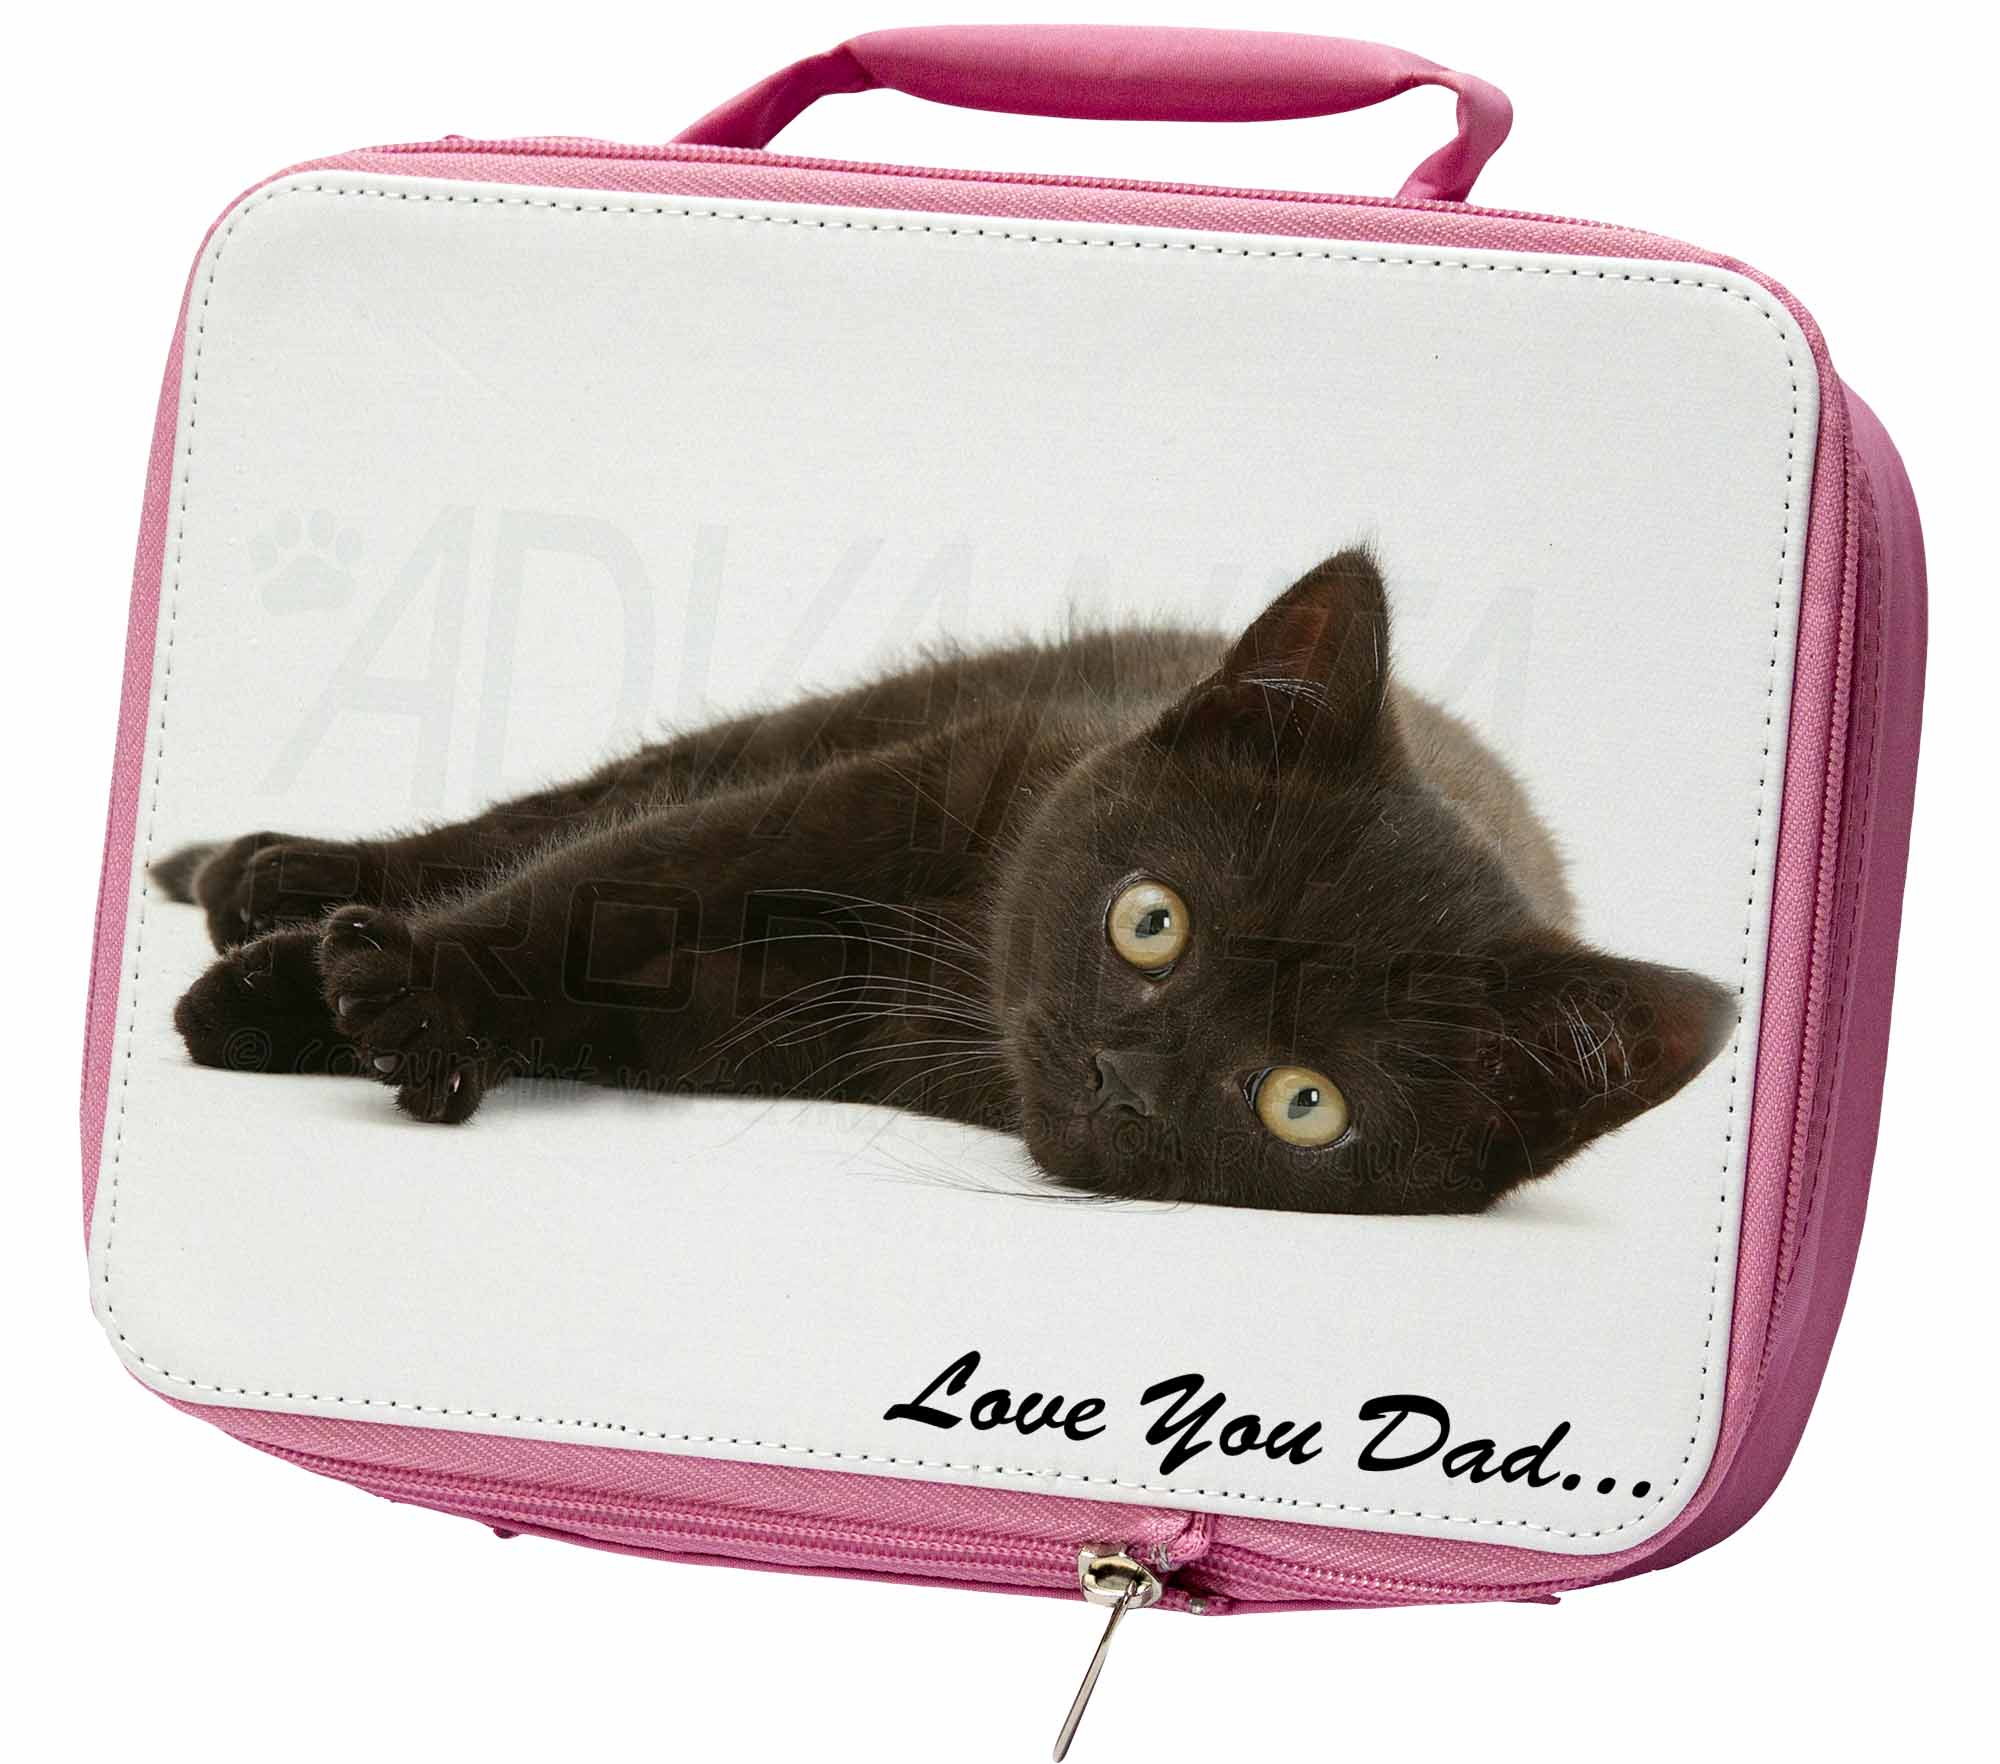 Black Cat 'Love You Dad' Insulated Pink School Lunch Box Bag, DAD159LBP